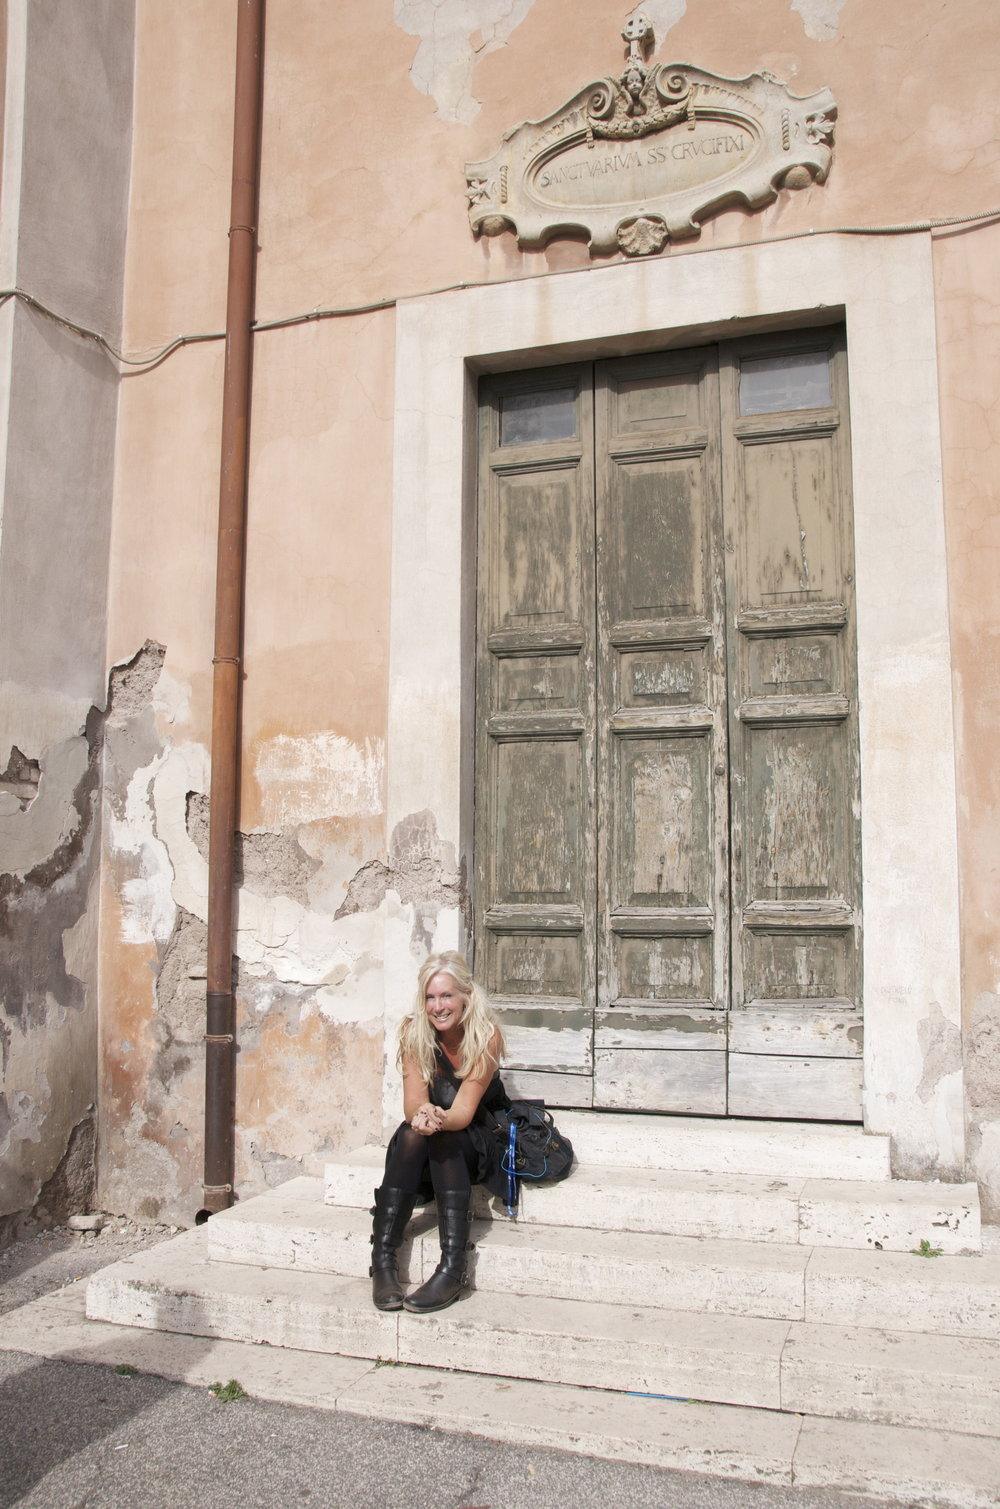 Giant Doors in Rome